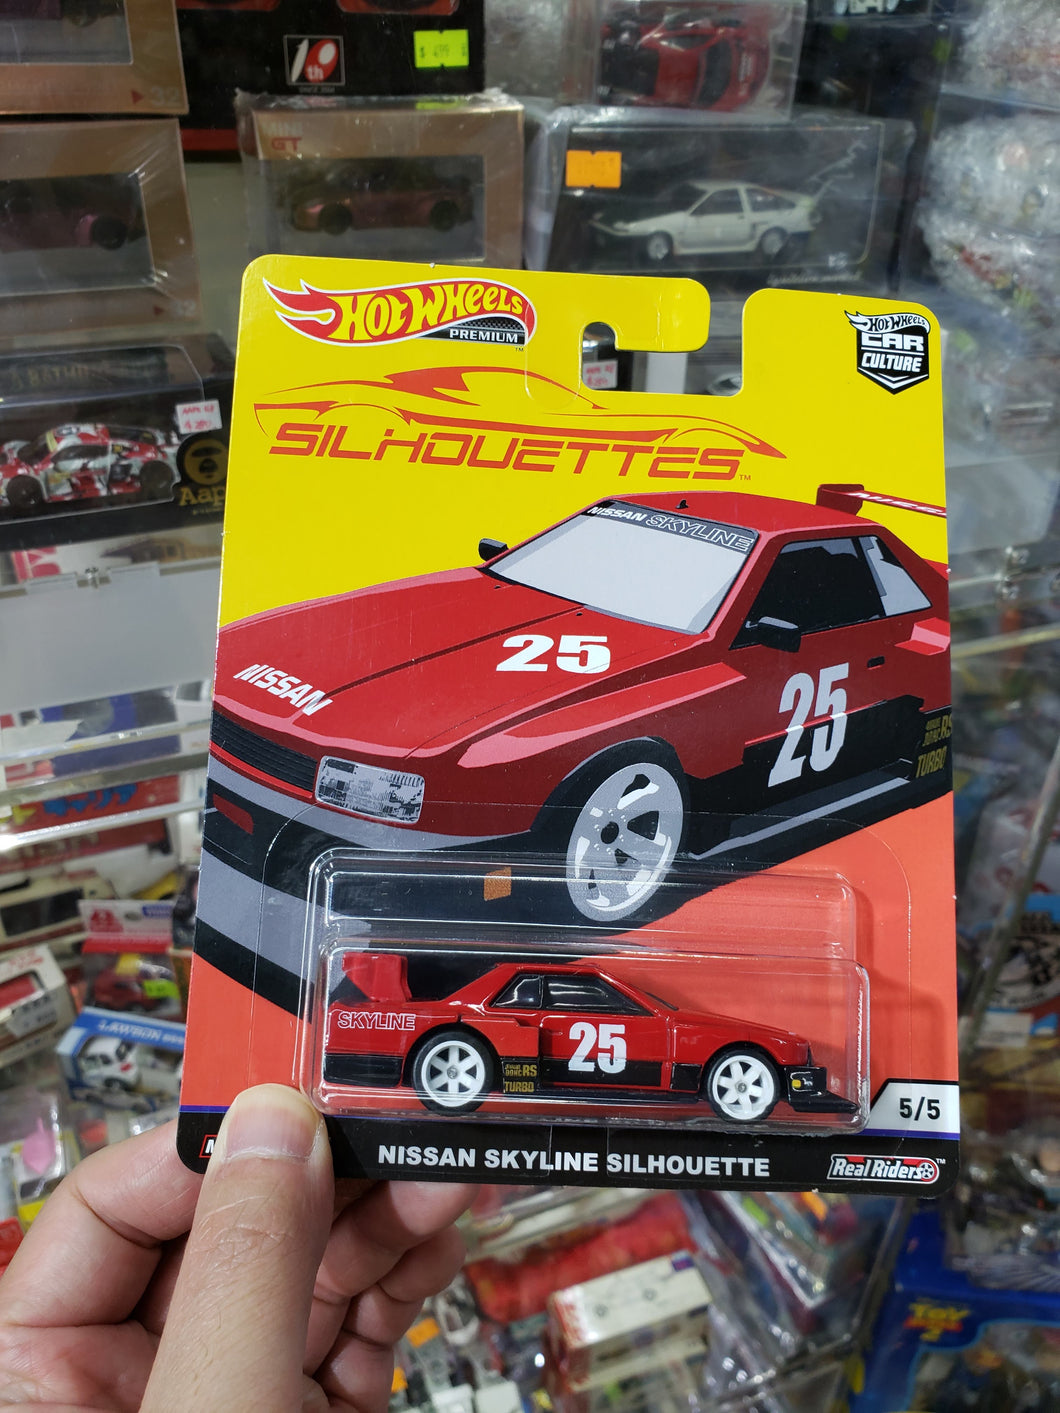 Hot Wheels Premium Car Culture Silhouettes Nissan Skyline Silhouette Real Riders